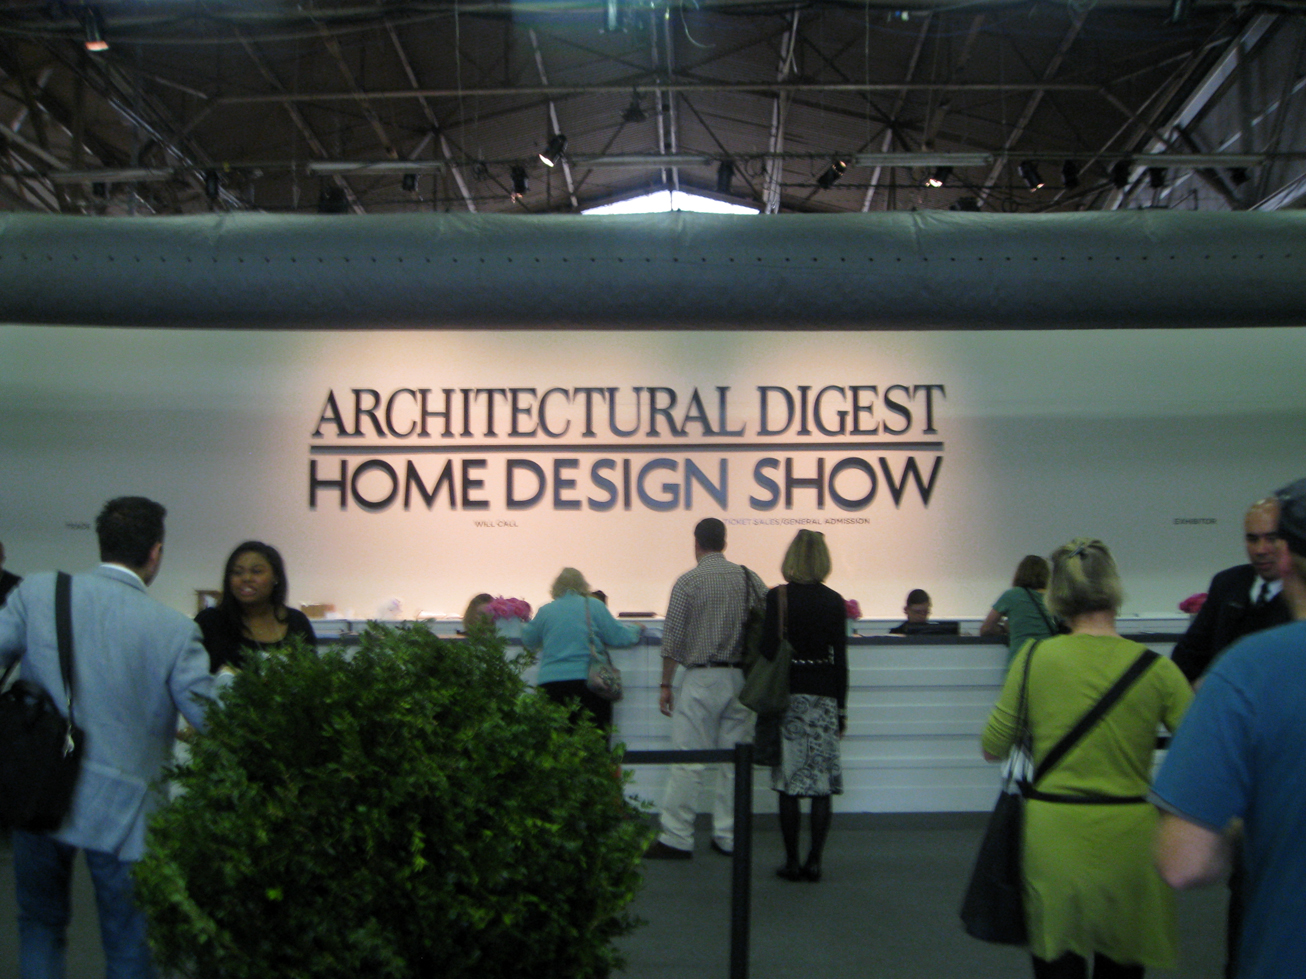 Architectural digest home show features artisan crafted for Architectural digest show